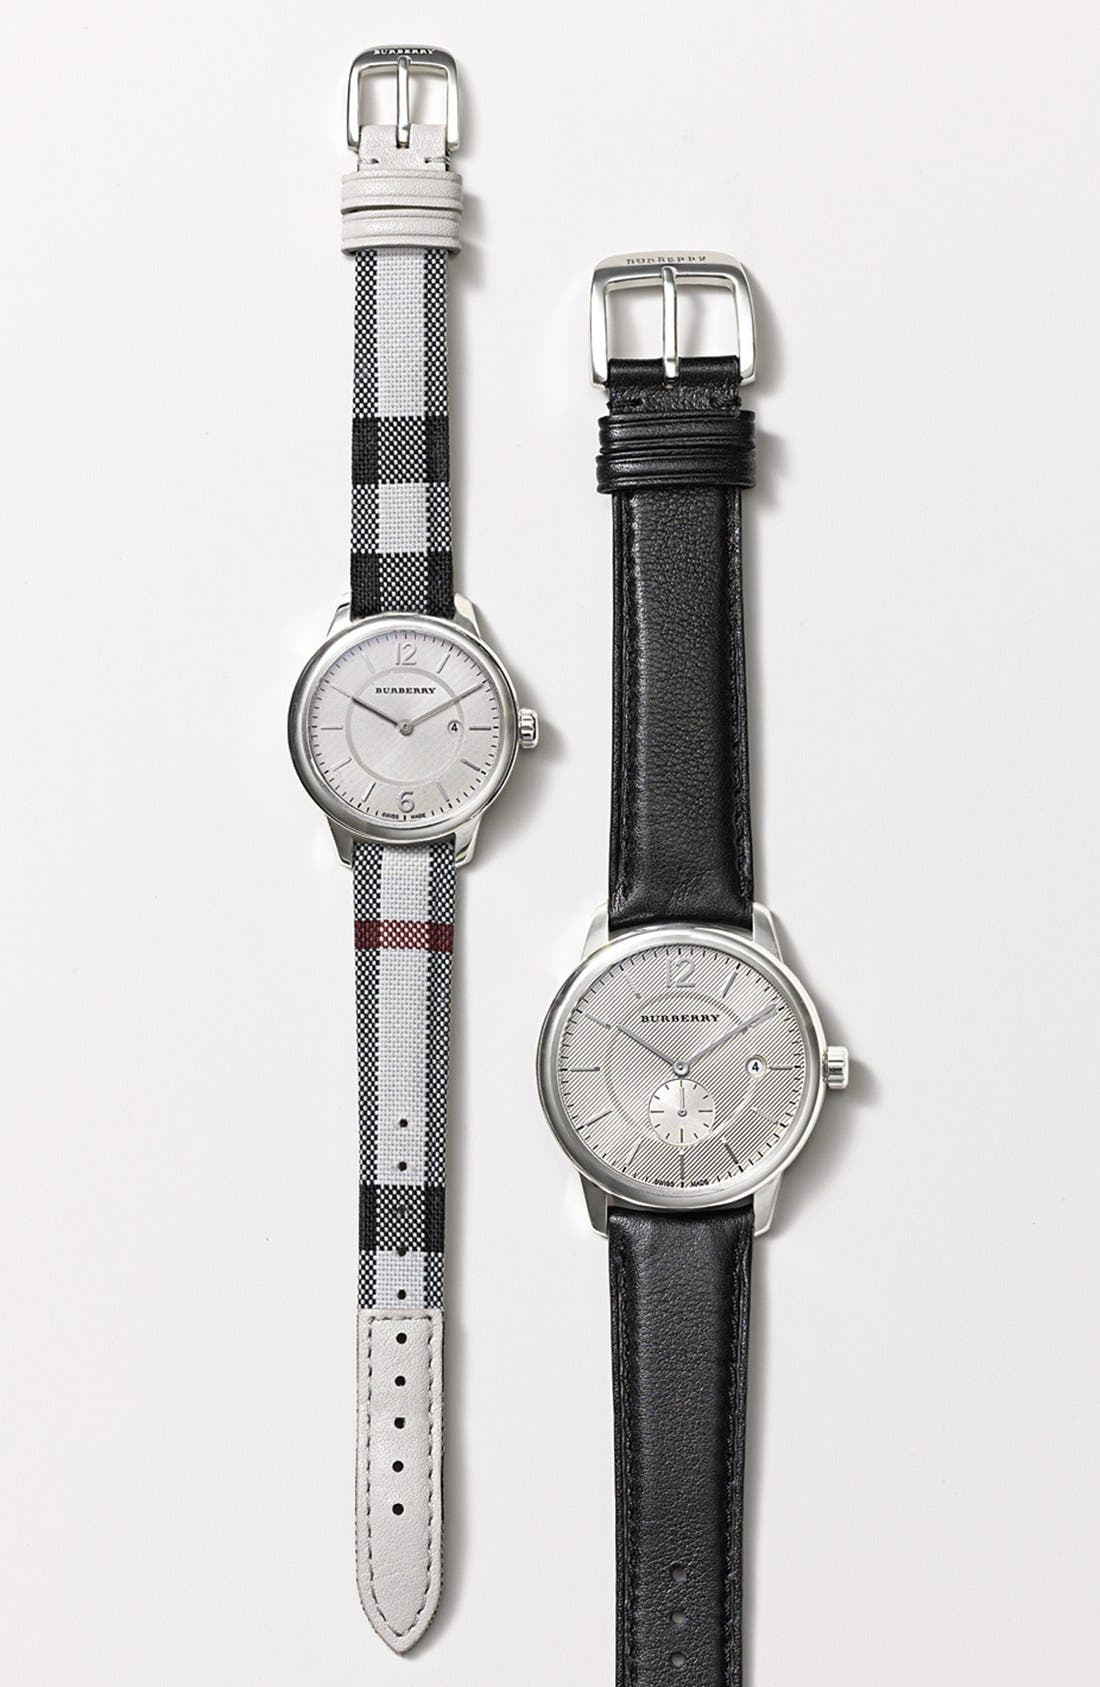 BURBERRY, Textured Dial Watch, 40mm, Alternate thumbnail 4, color, 001